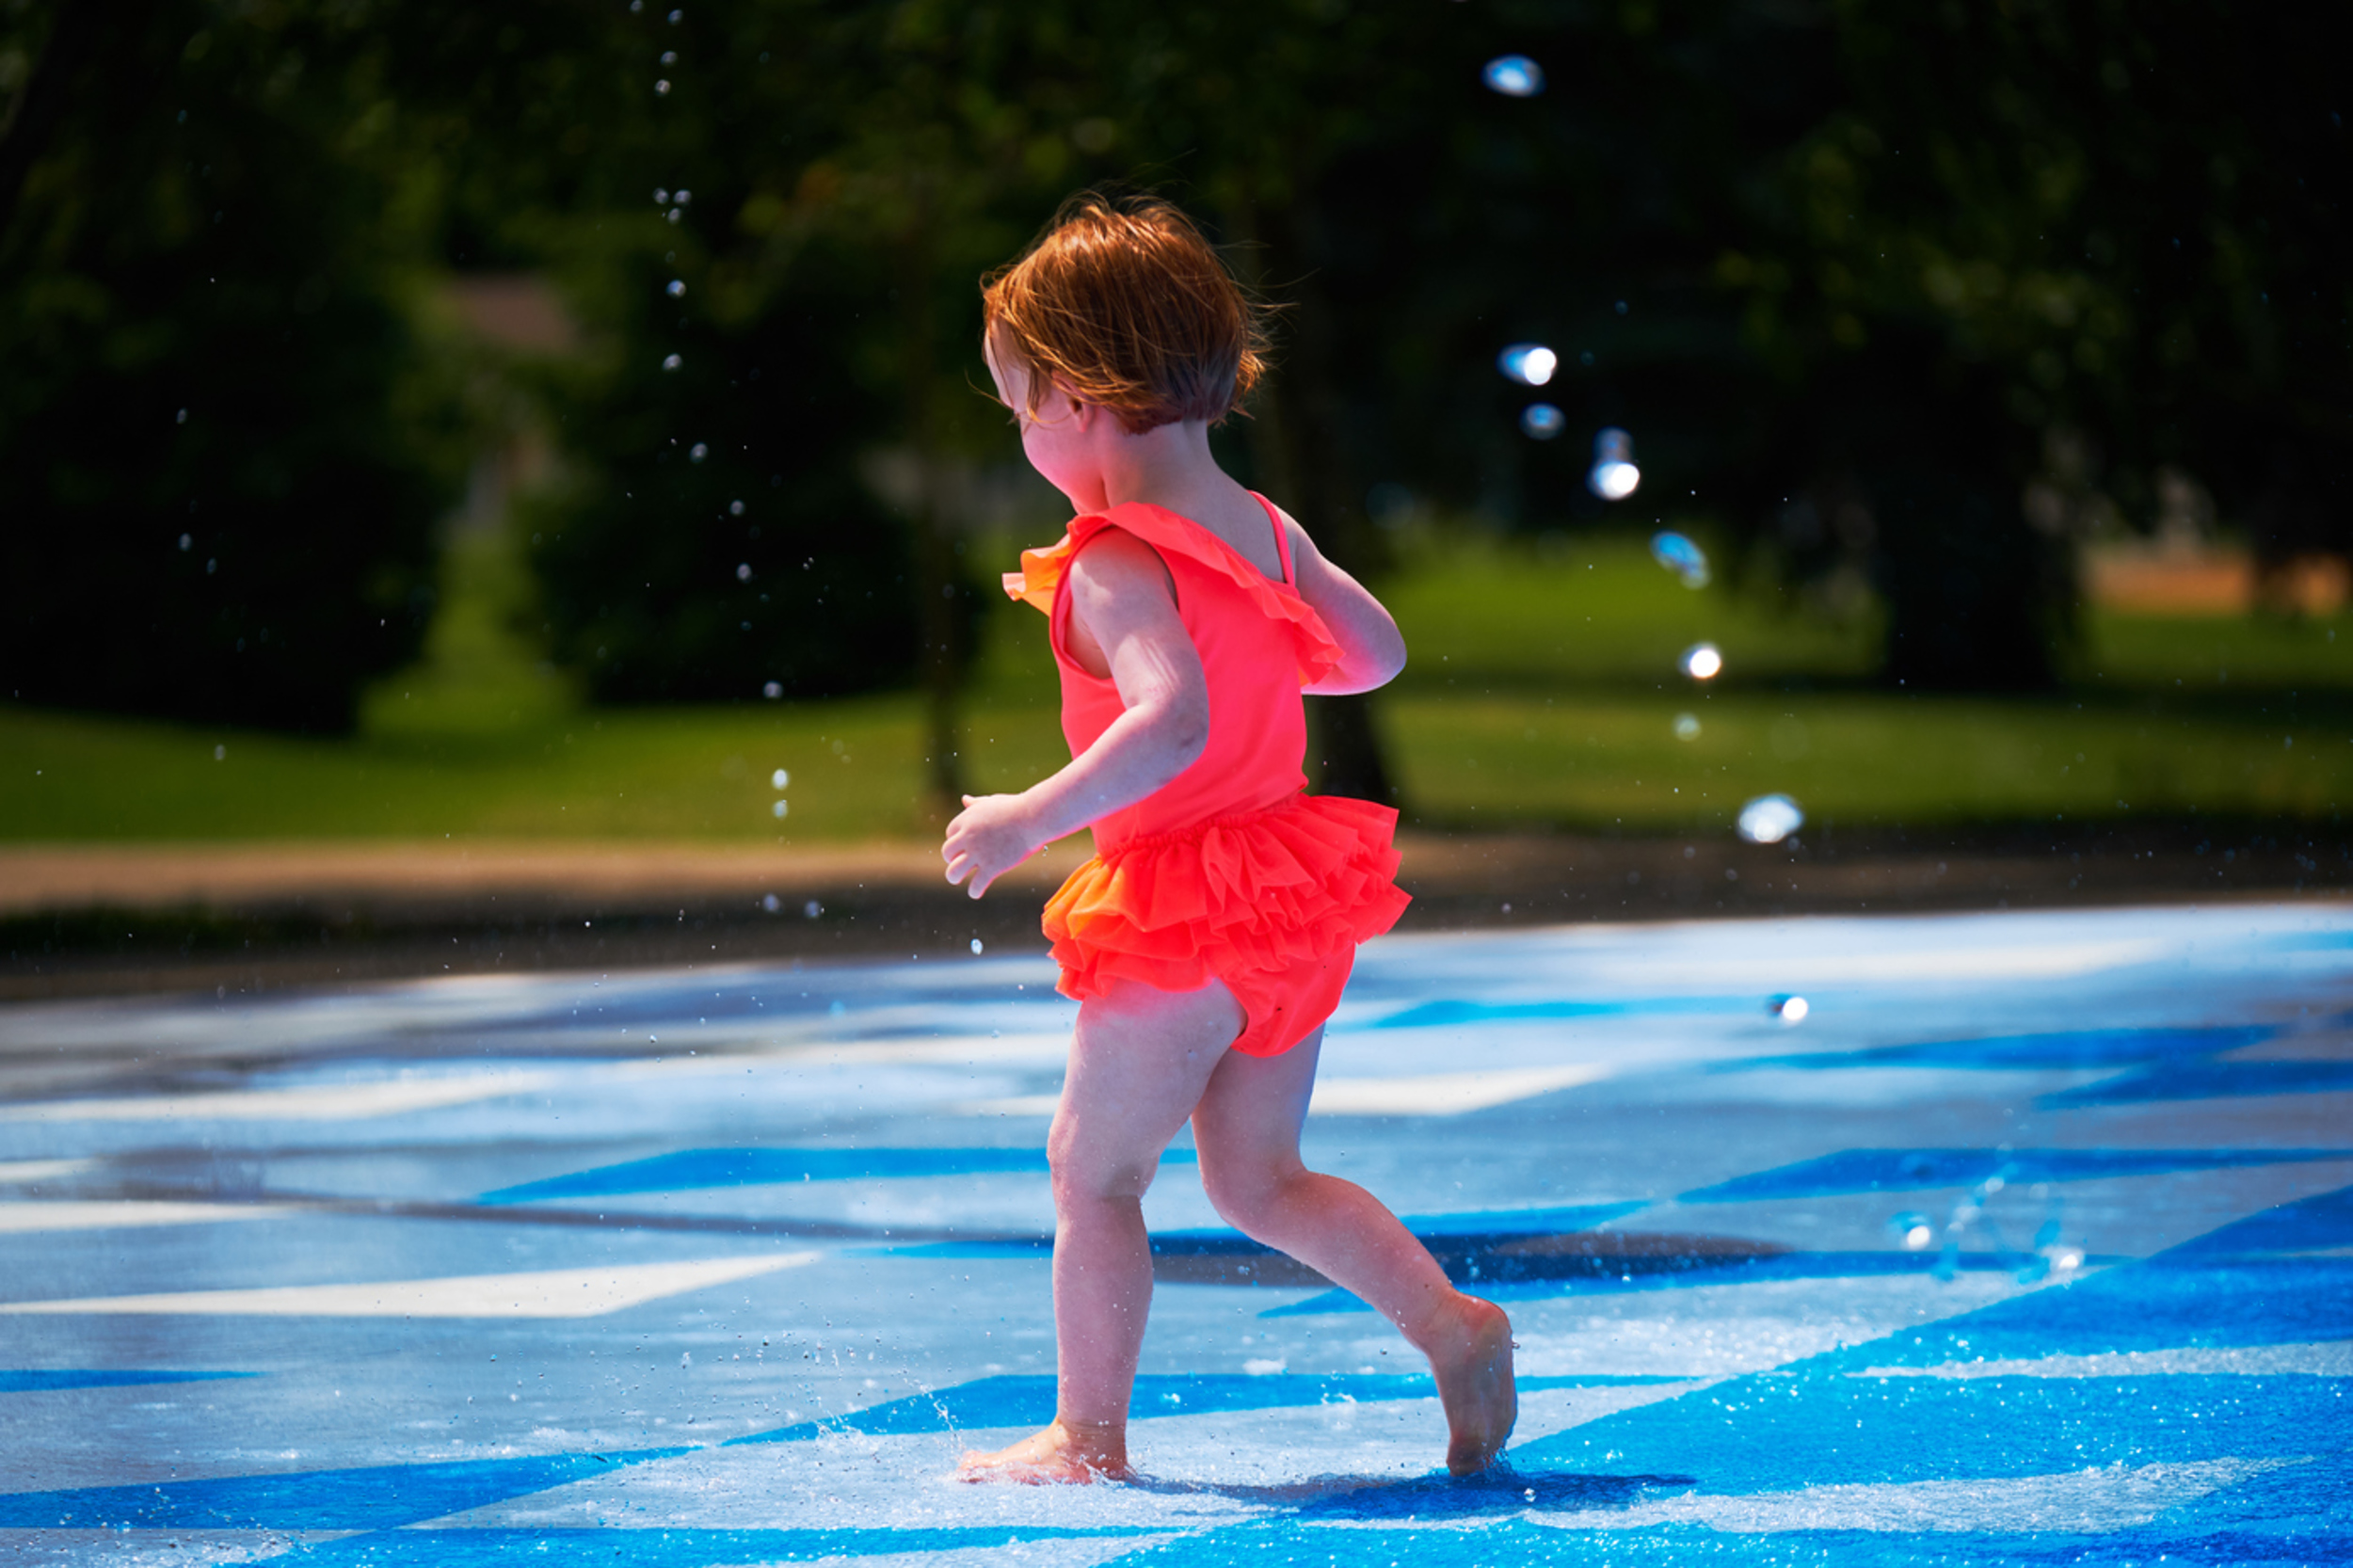 Bloomington_Splash_Pad_Retouched_RGR13198 (2).jpg